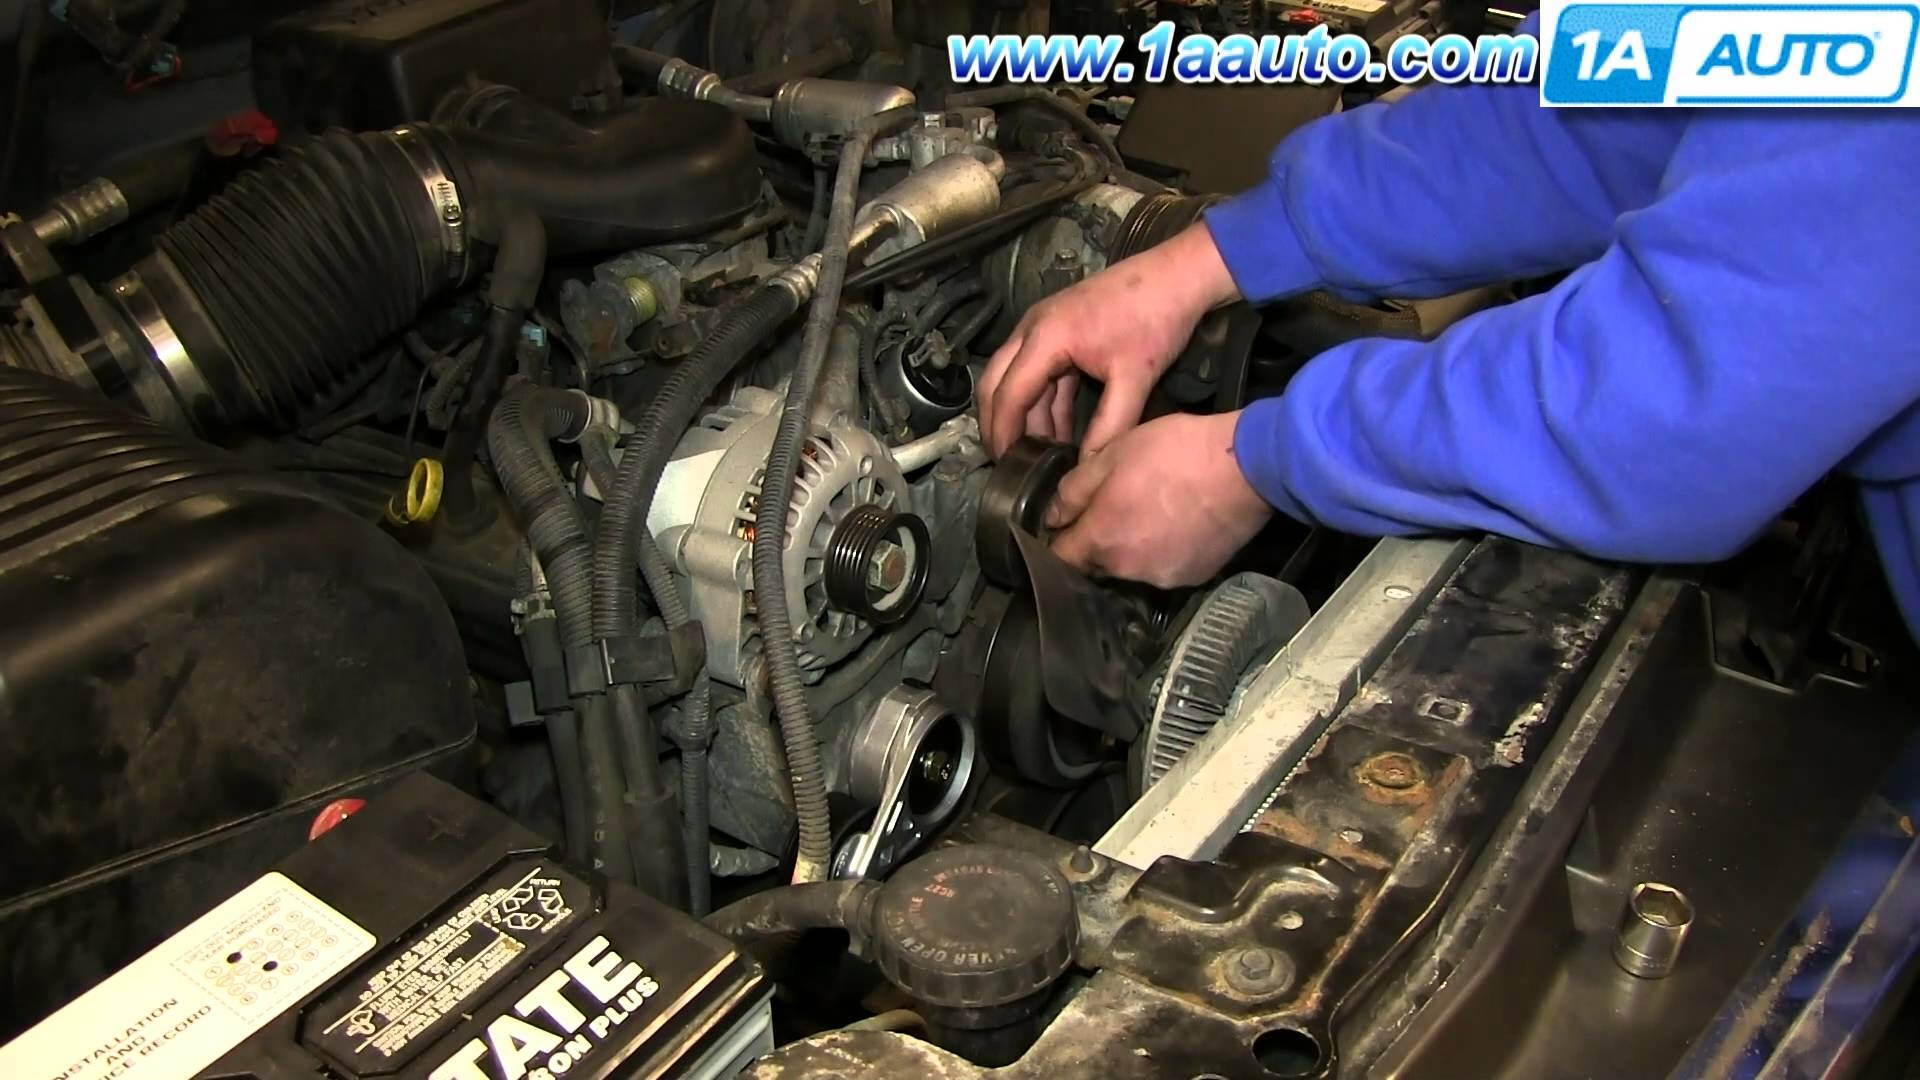 4 3 Vortec Engine Diagram How To Replace A Freeze Plug Gm V6 Serpentine Belt Install Idler Pulley 1996 99 Chevy